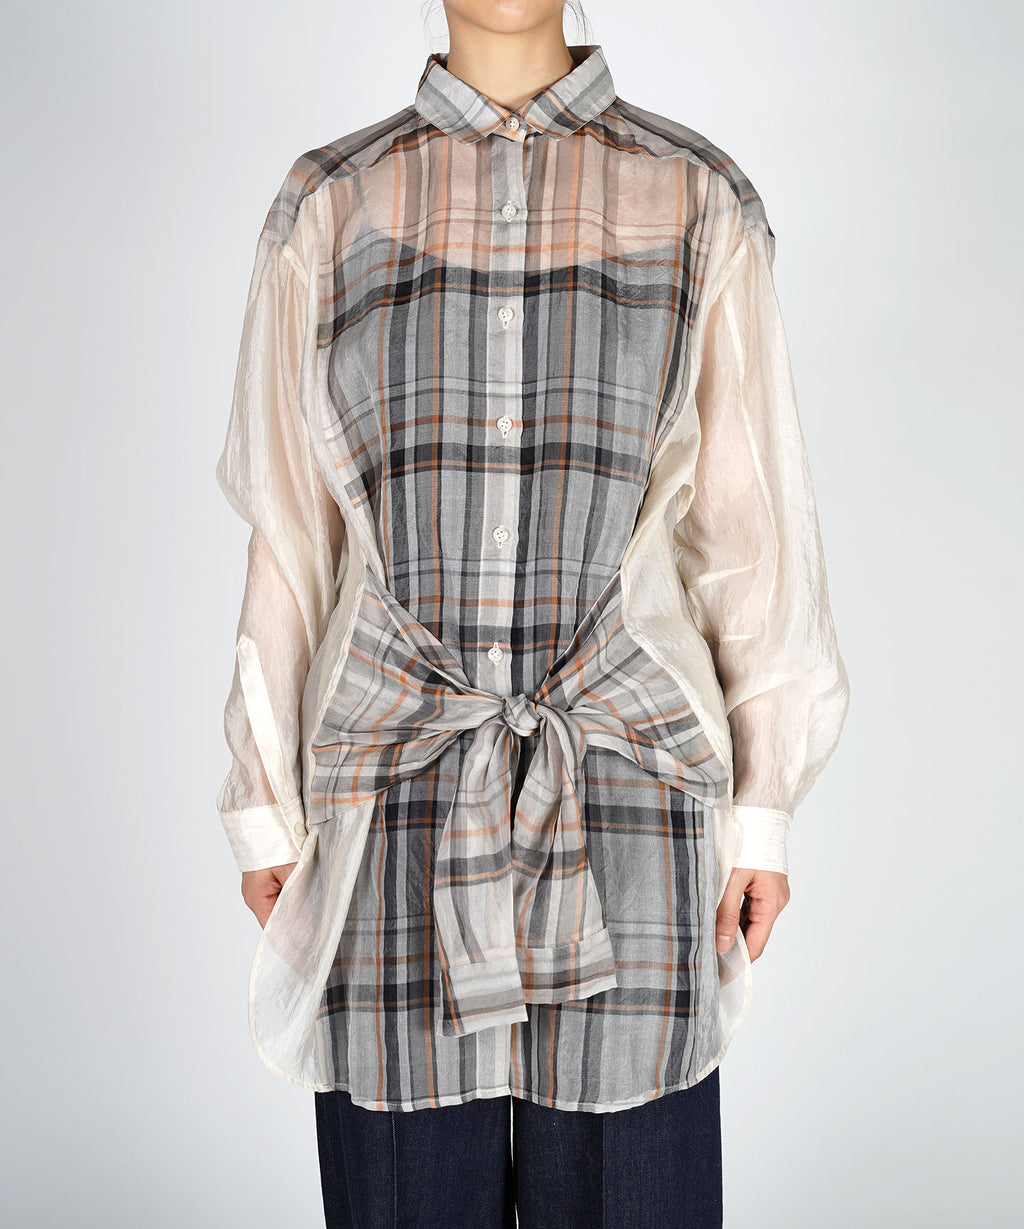 Organdy check blouse